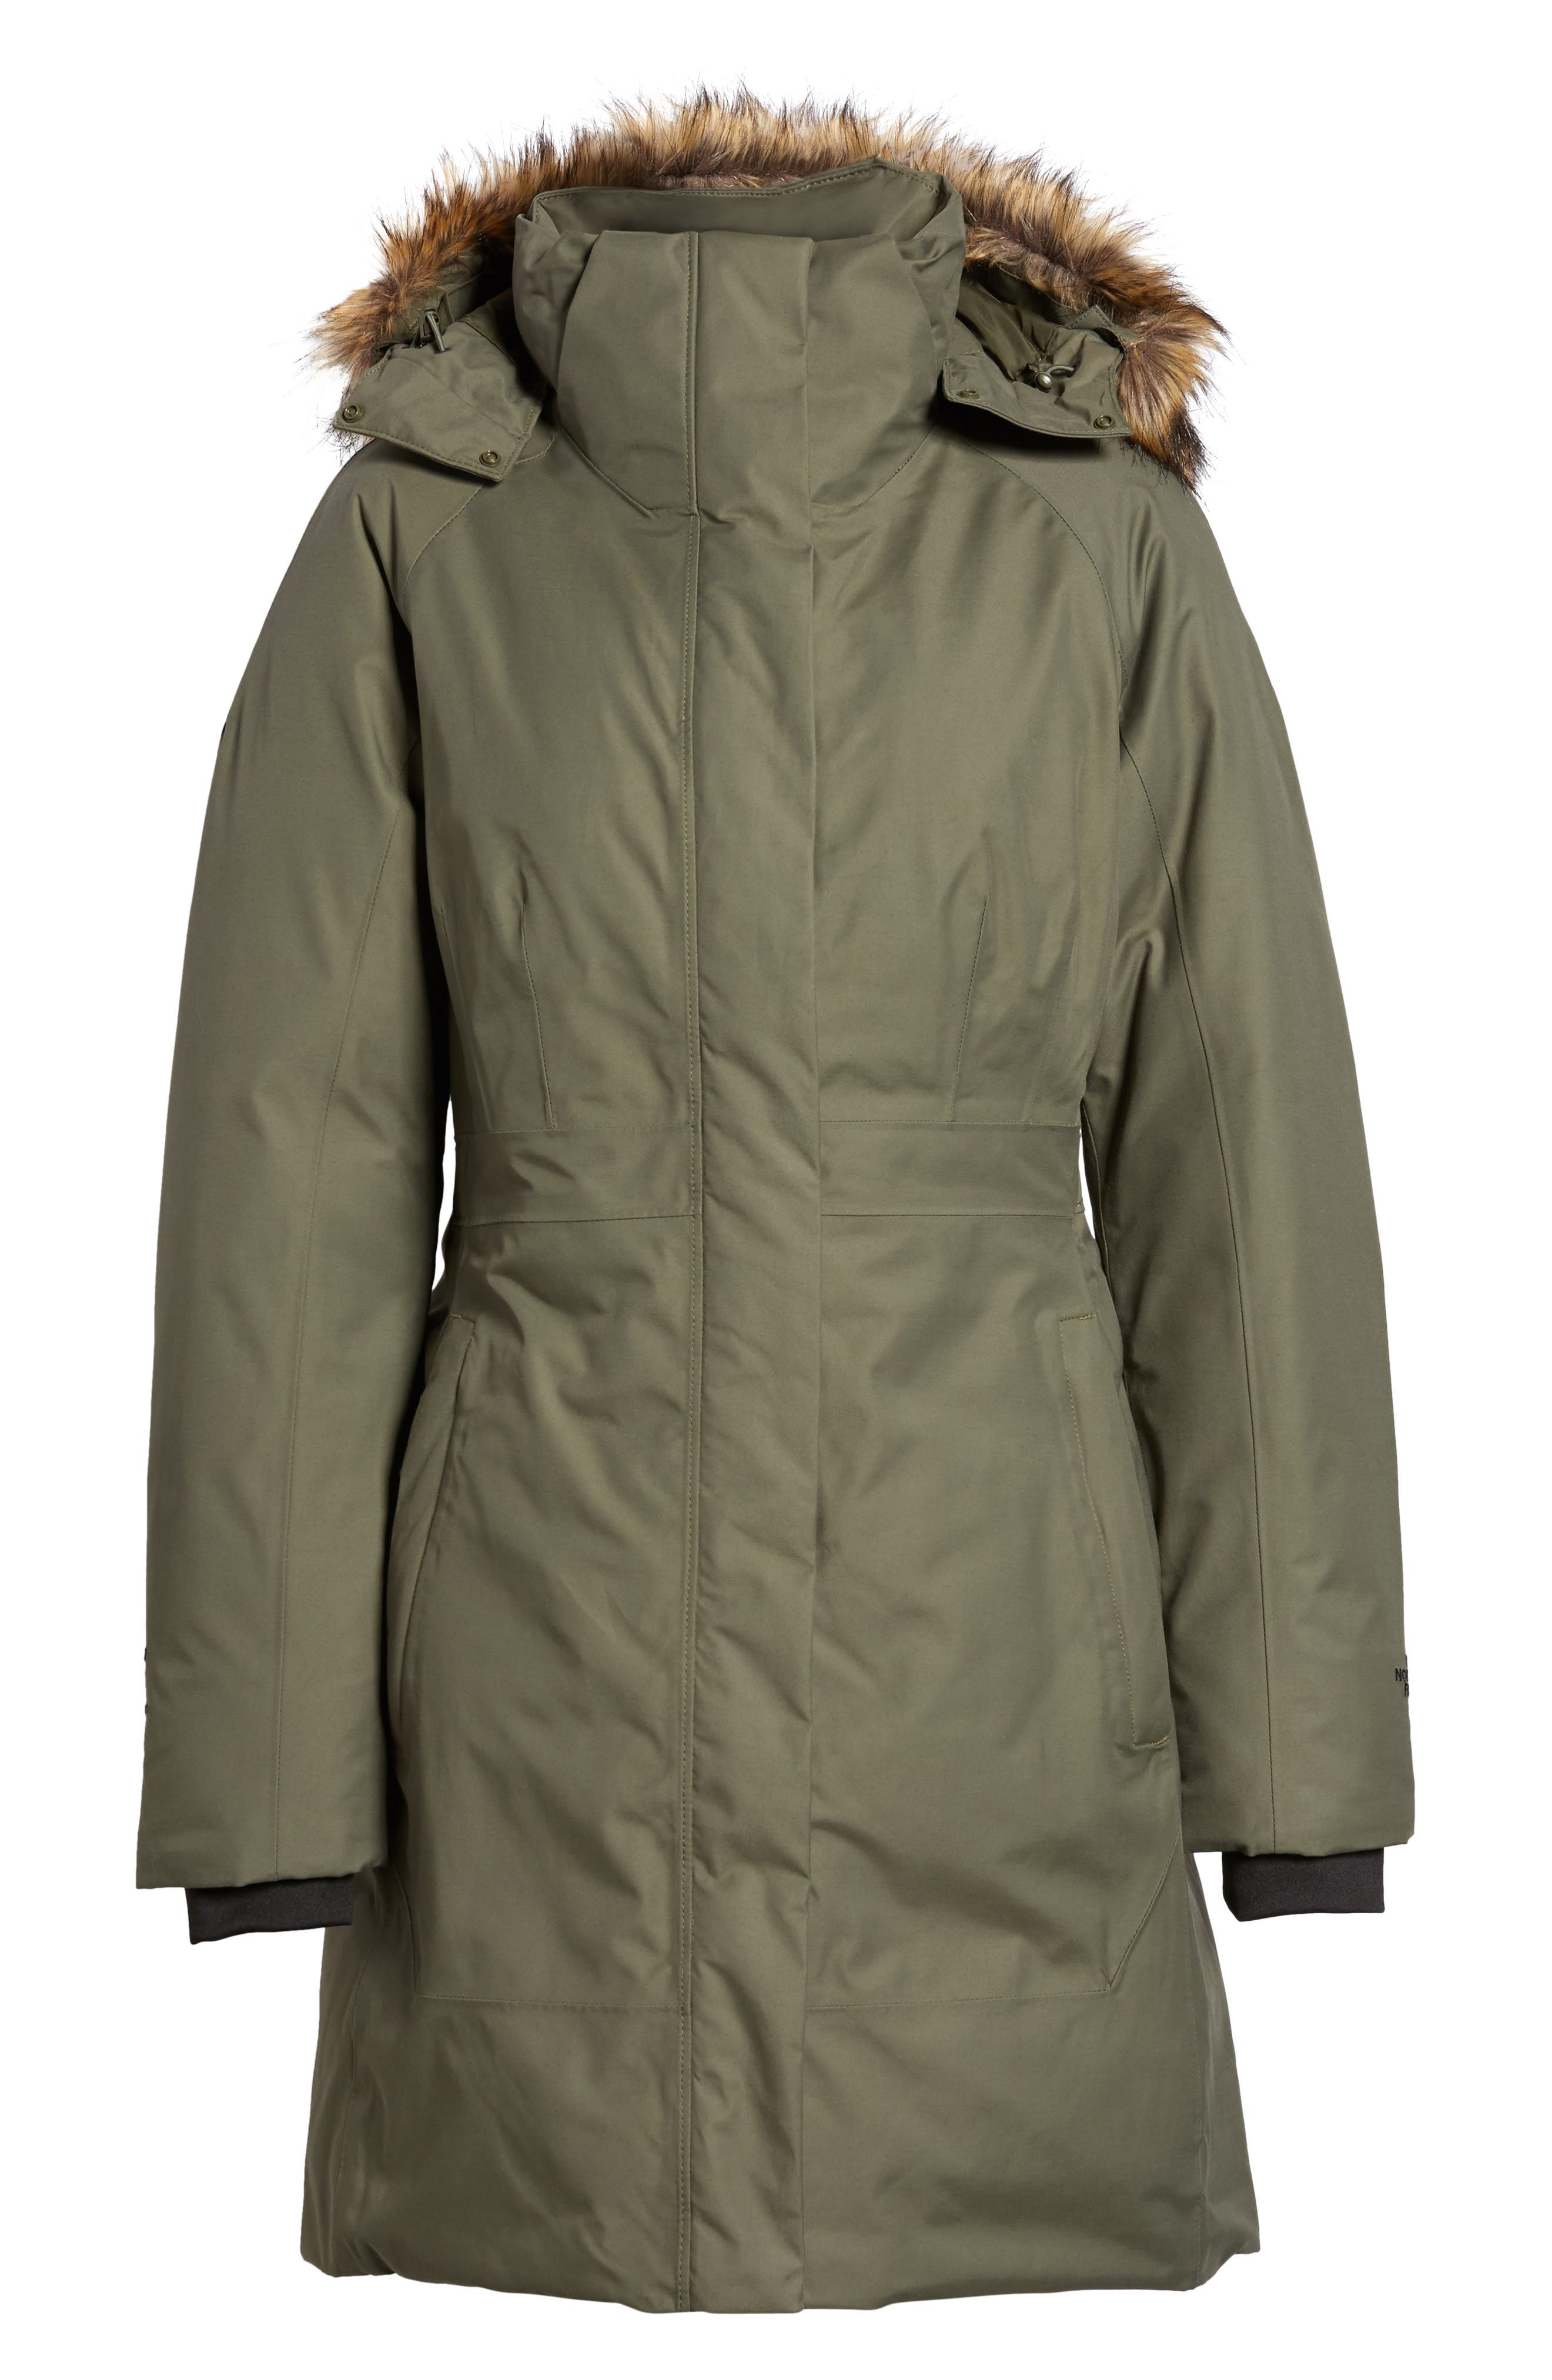 Arctic II Waterproof 550-Fill-Power Down Parka with Faux Fur Trim,                             Alternate thumbnail 7, color,                             New Taupe Green